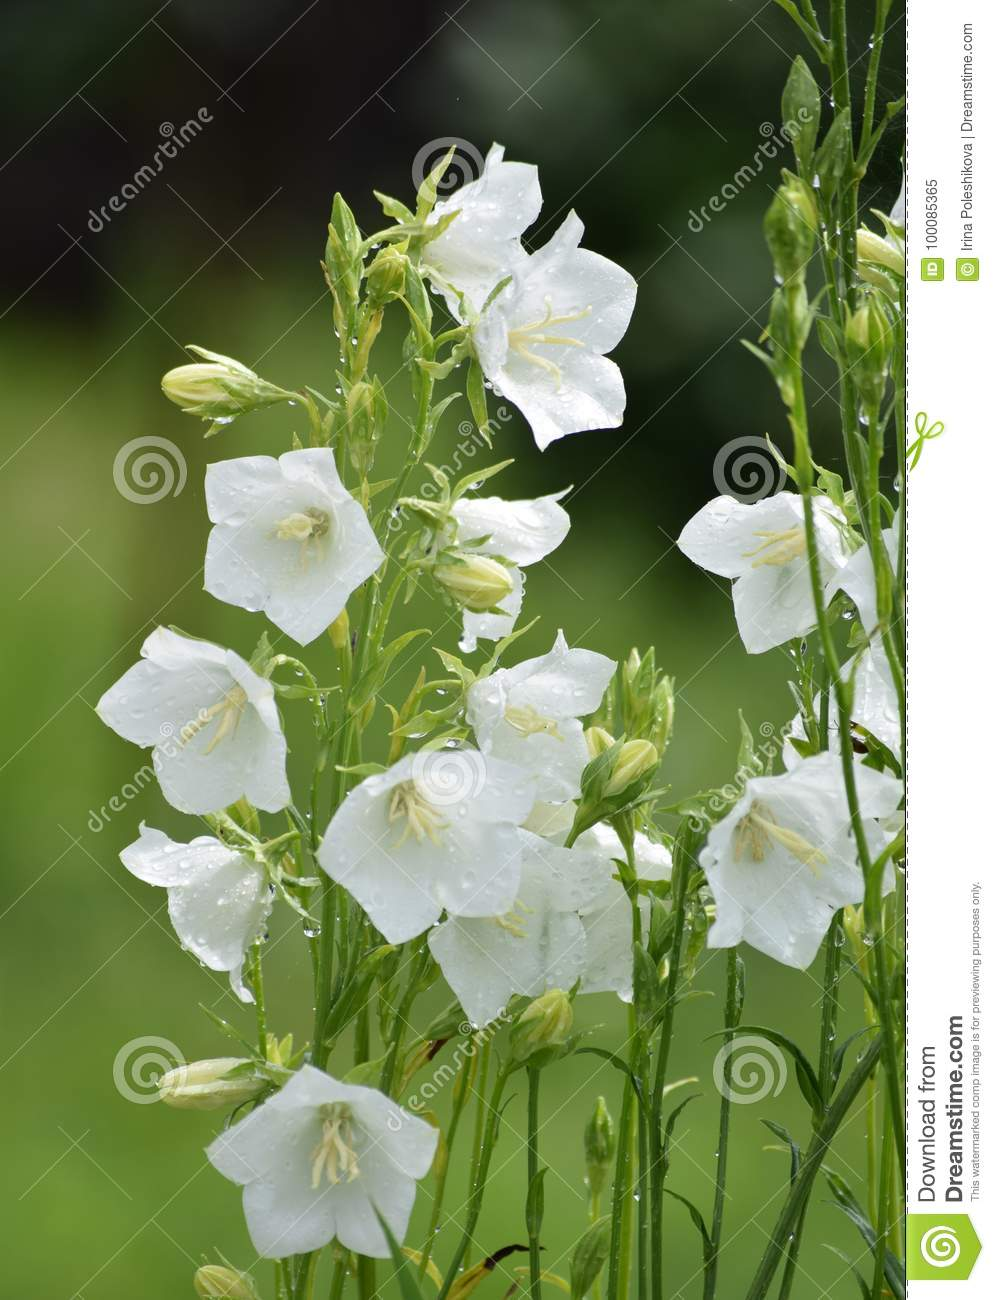 Bell flower stock image image of summer white flowers 100085365 download bell flower stock image image of summer white flowers 100085365 mightylinksfo